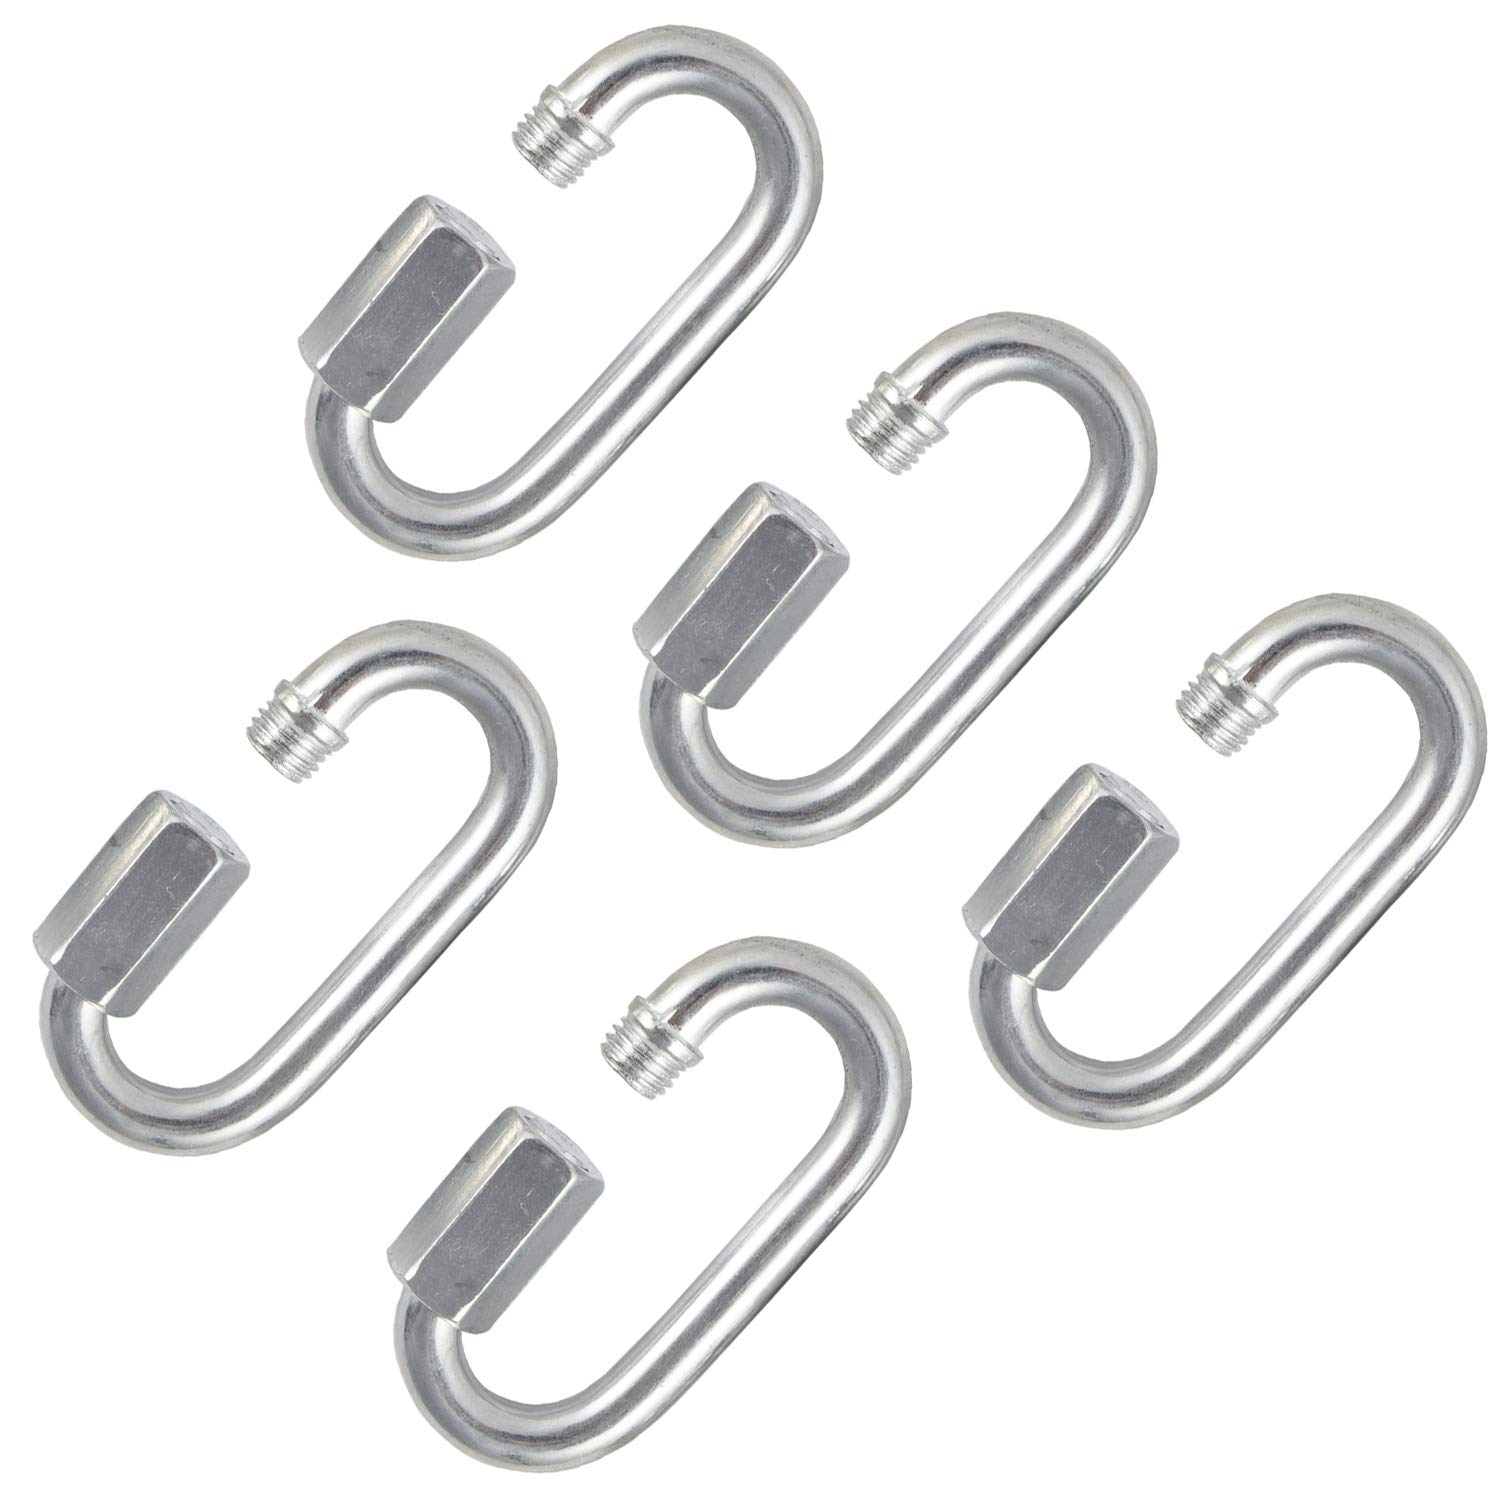 M6 Lock Quick Link Chain Shackle Connector 5PCS Screw Lock Carabiner